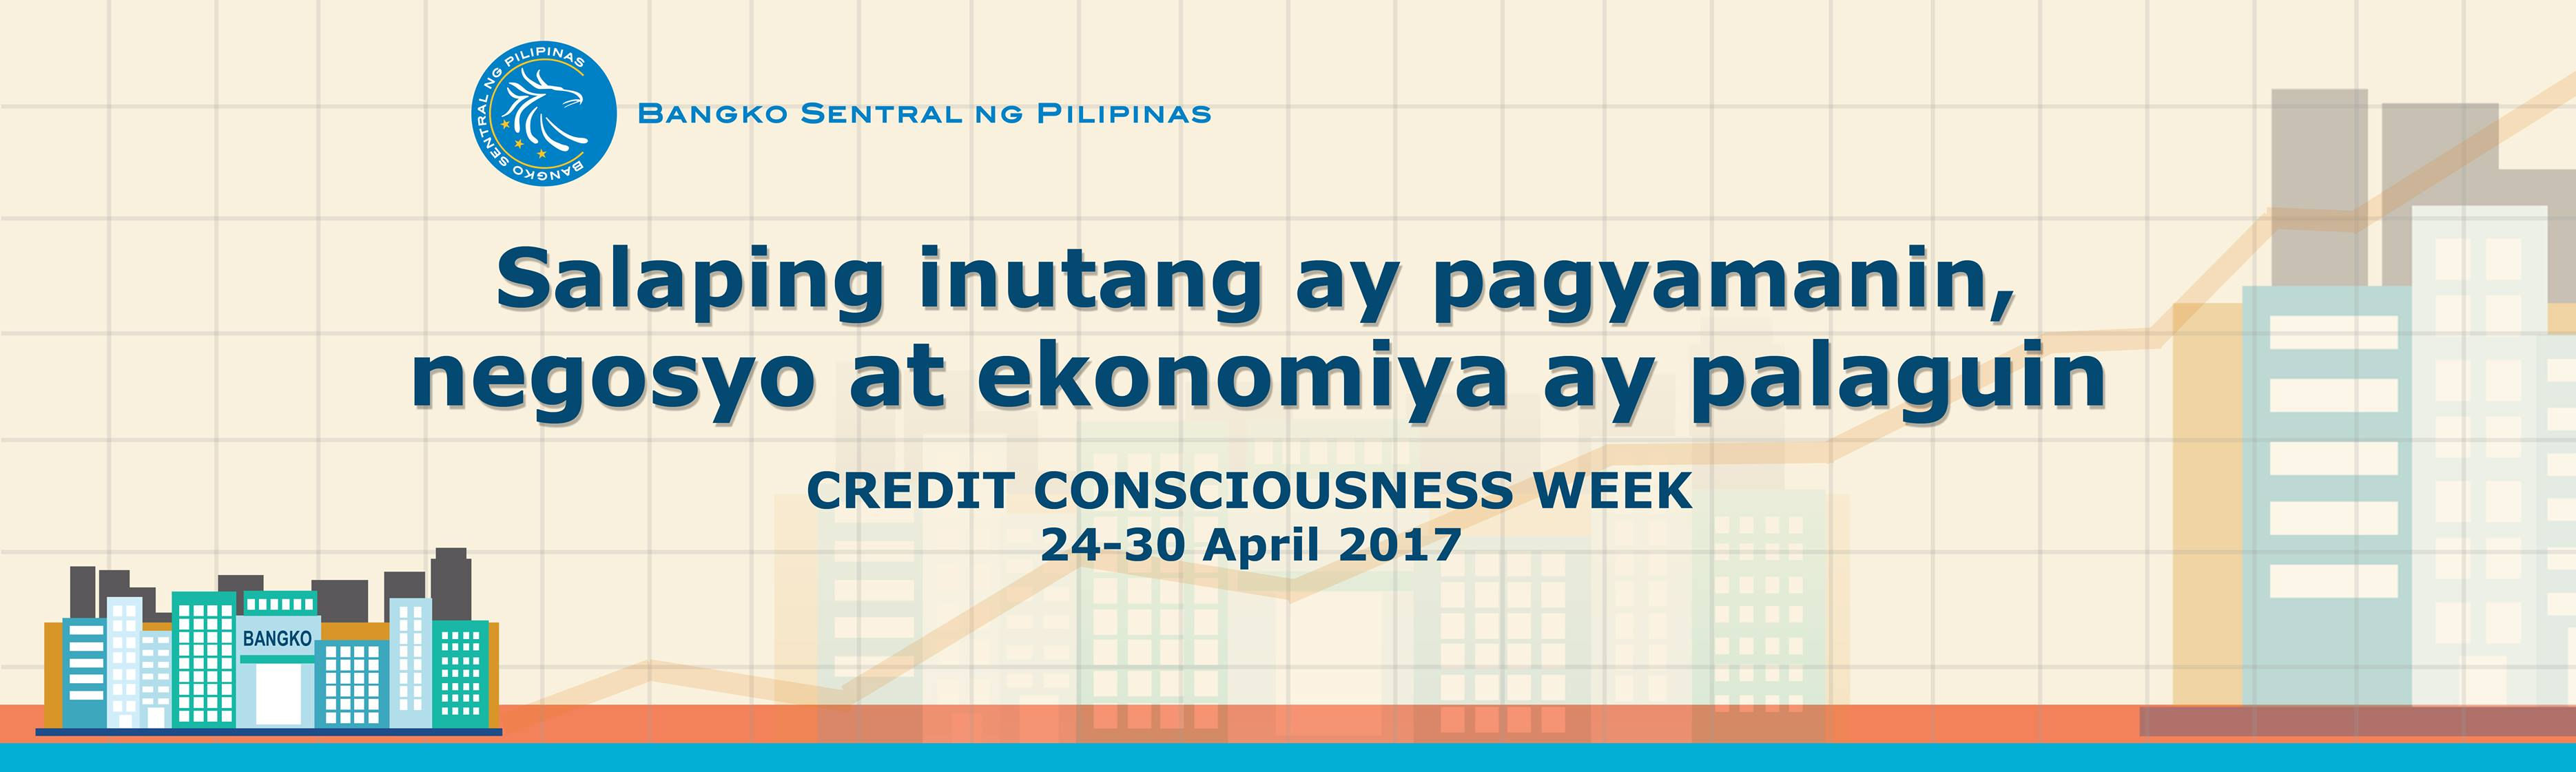 2017 Credit Consciousness Week